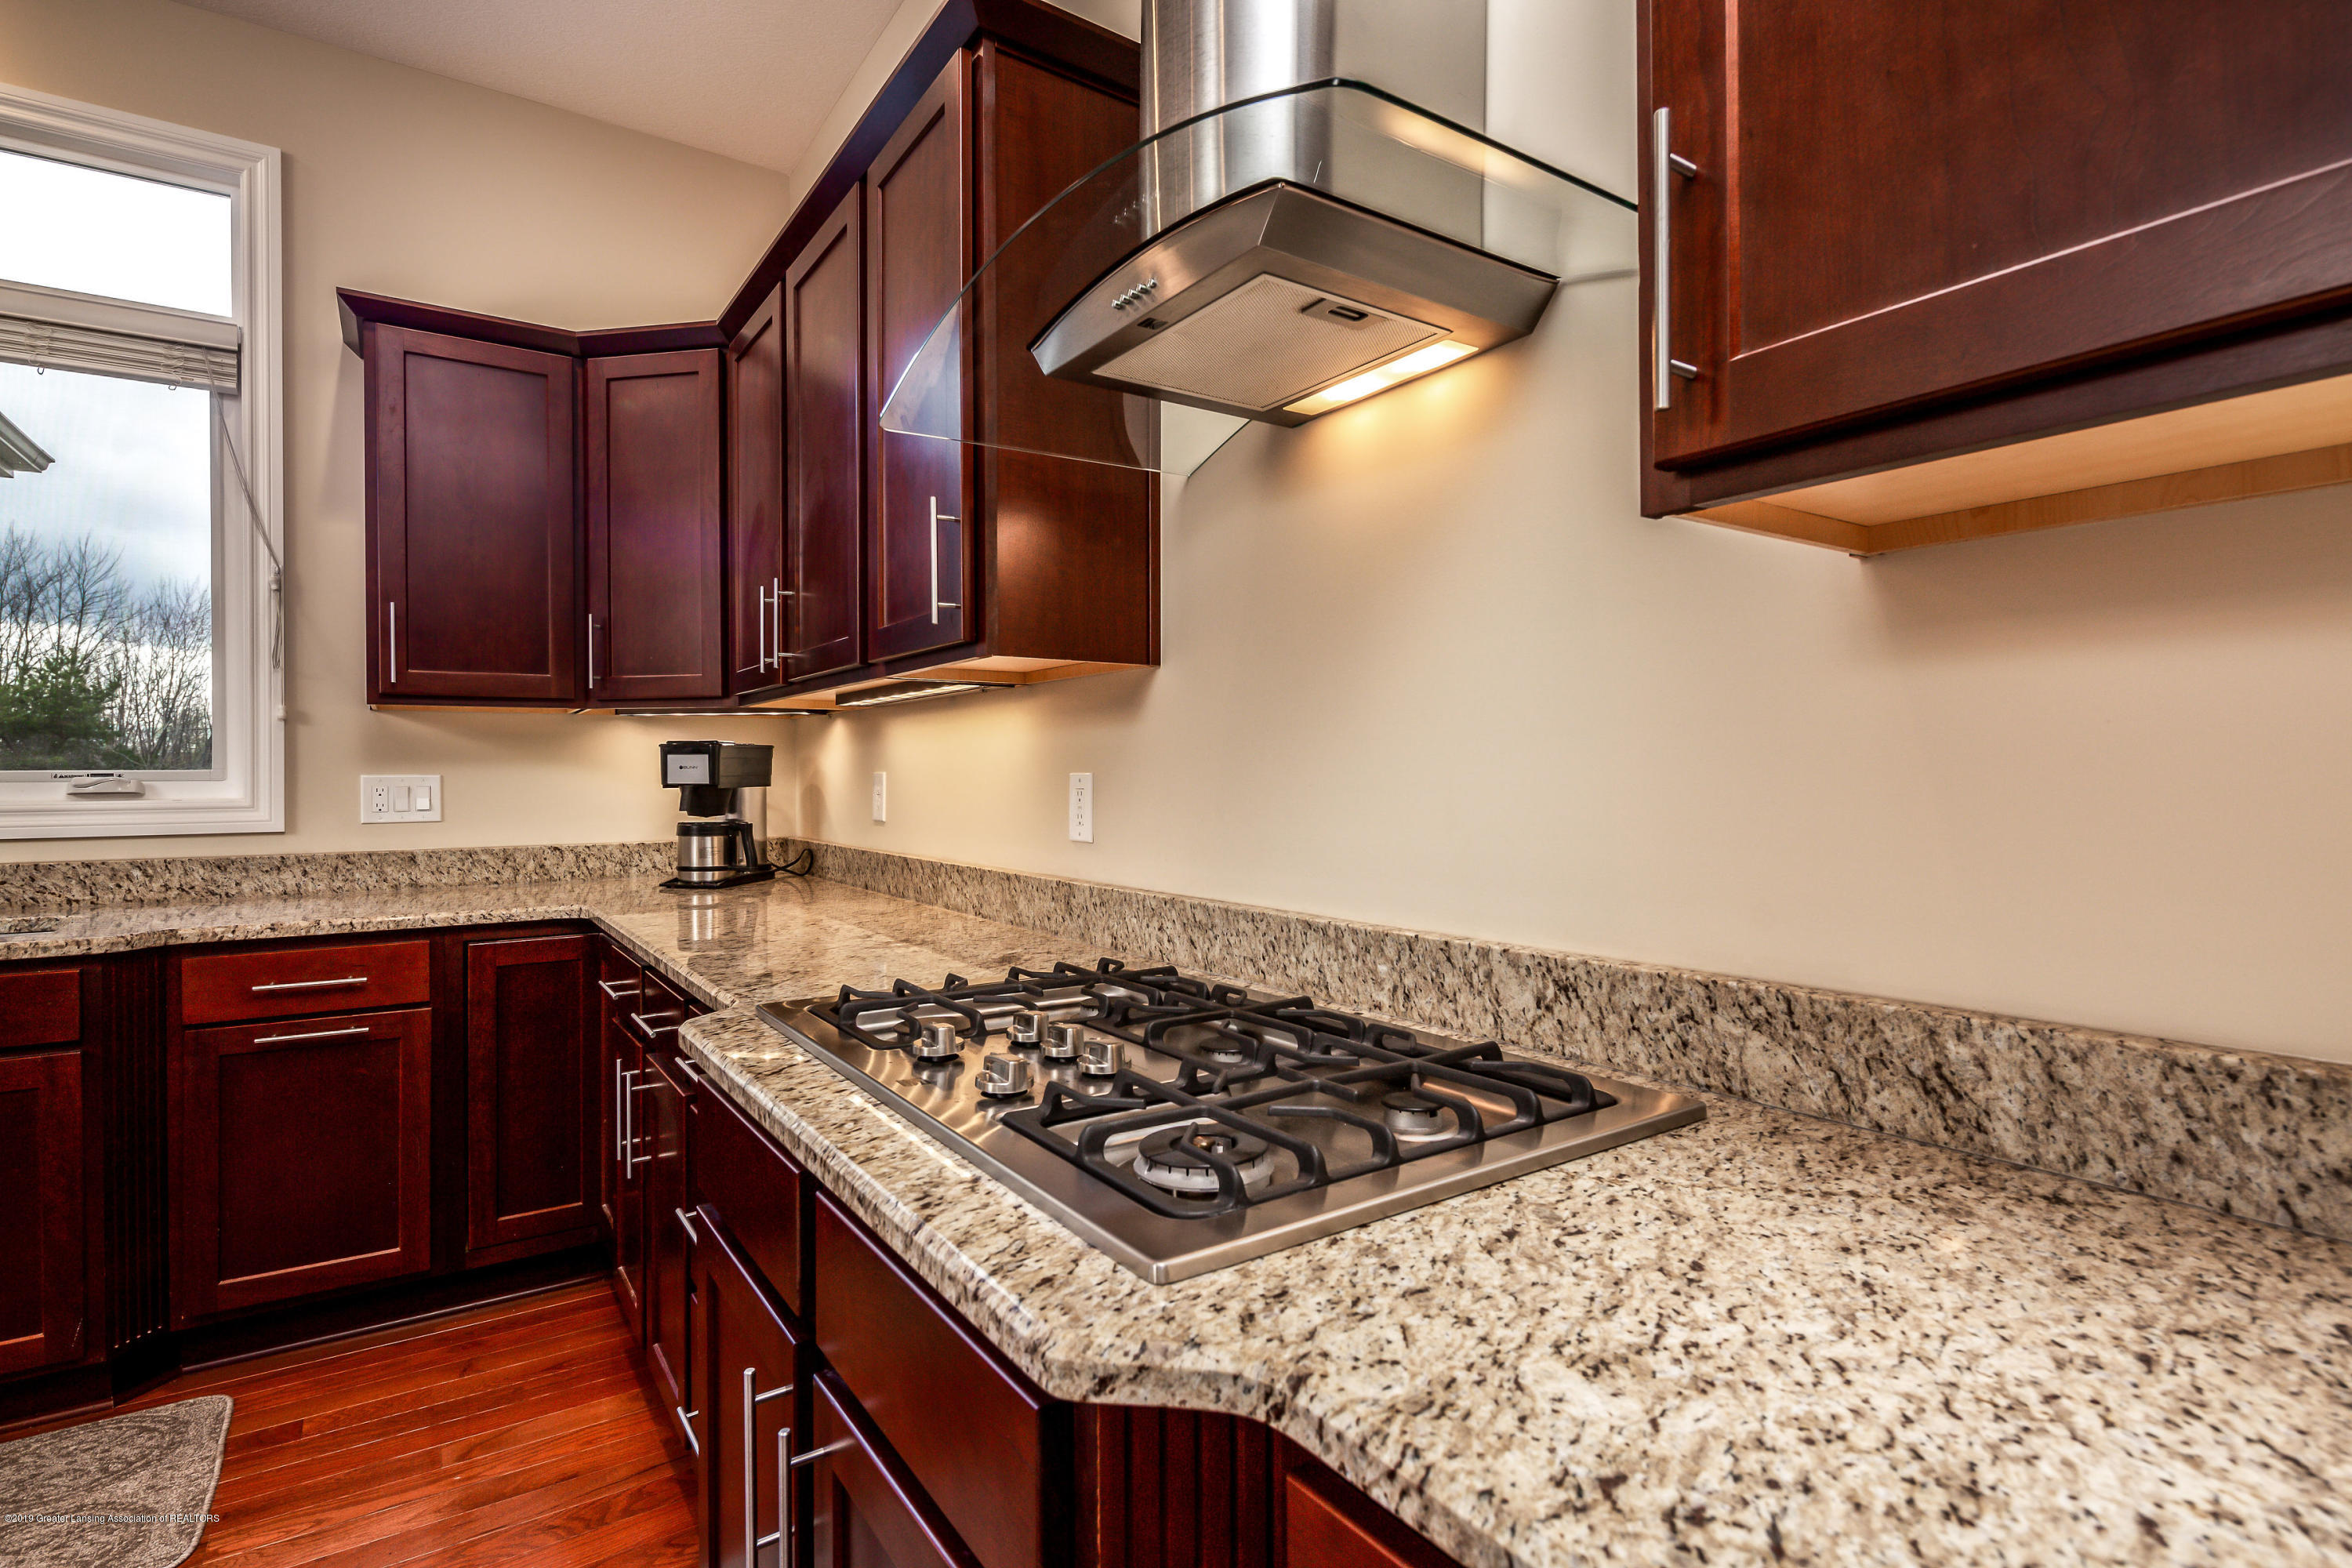 6257 Mereford Ct - 20190426-942A2818-Edit - 11